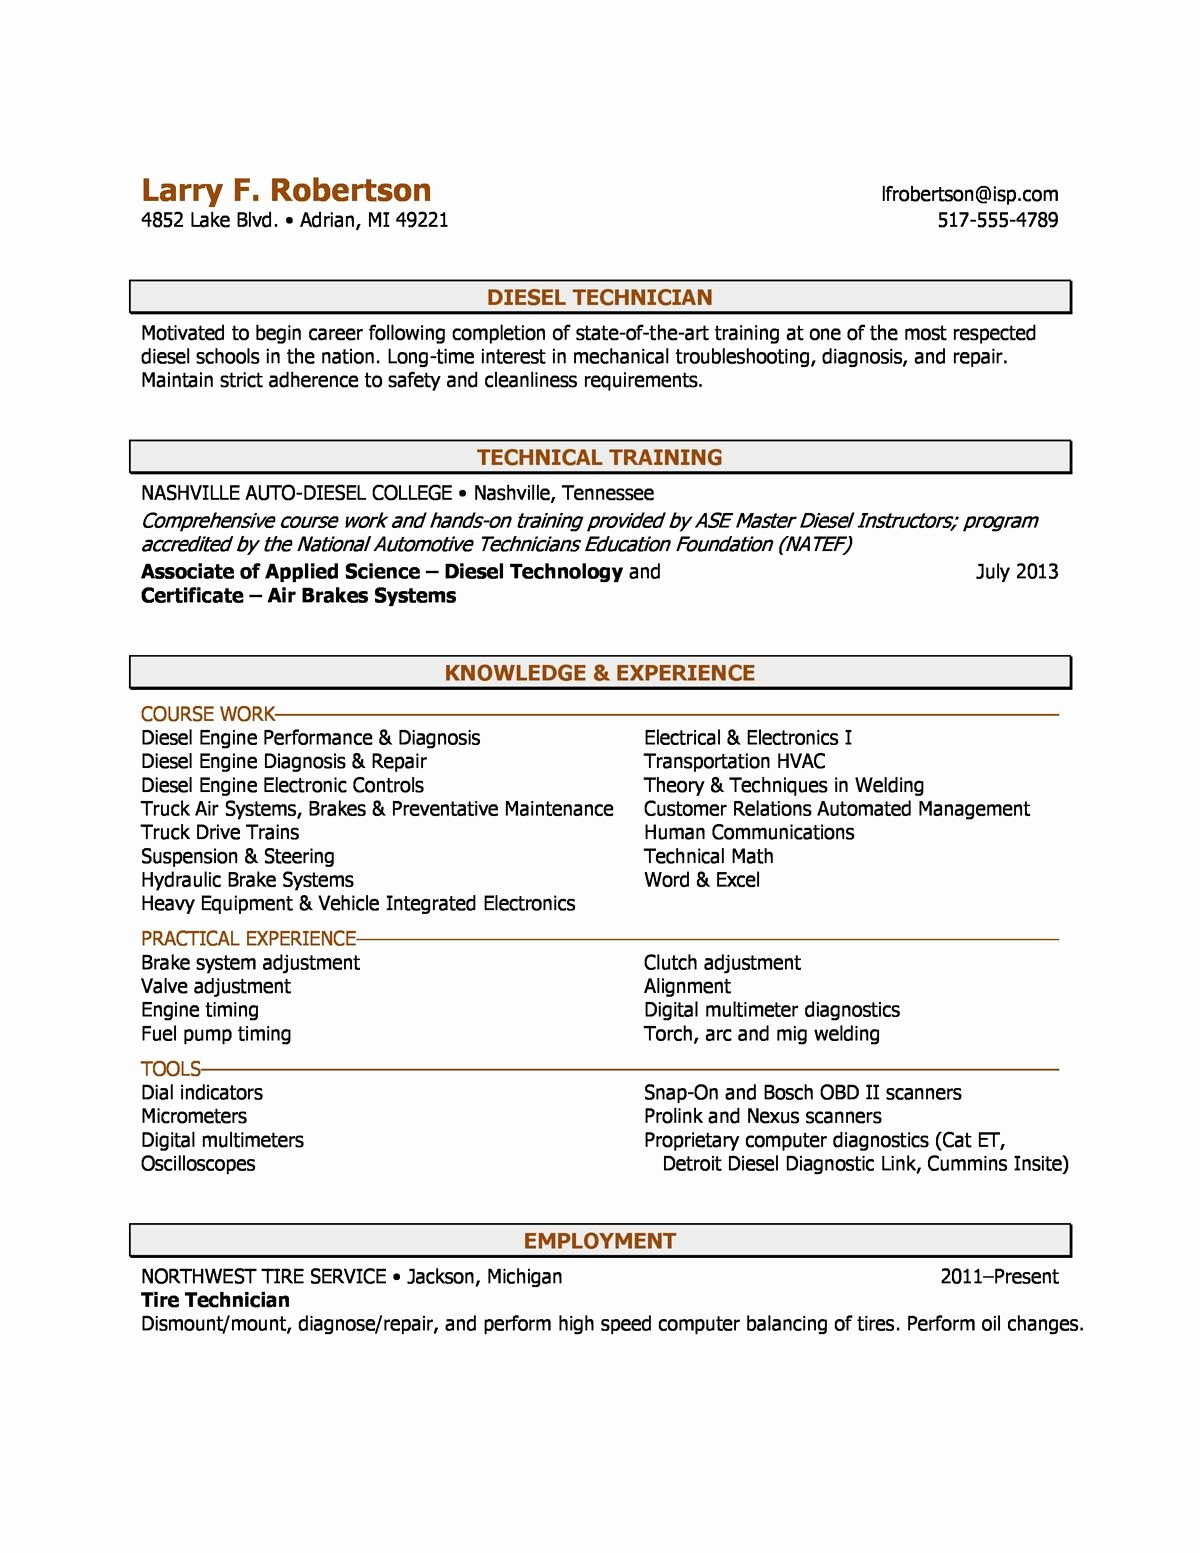 Combined Resume and Cover Letter Best Of Pin by Vault On Sample Resumes Cover Letters and